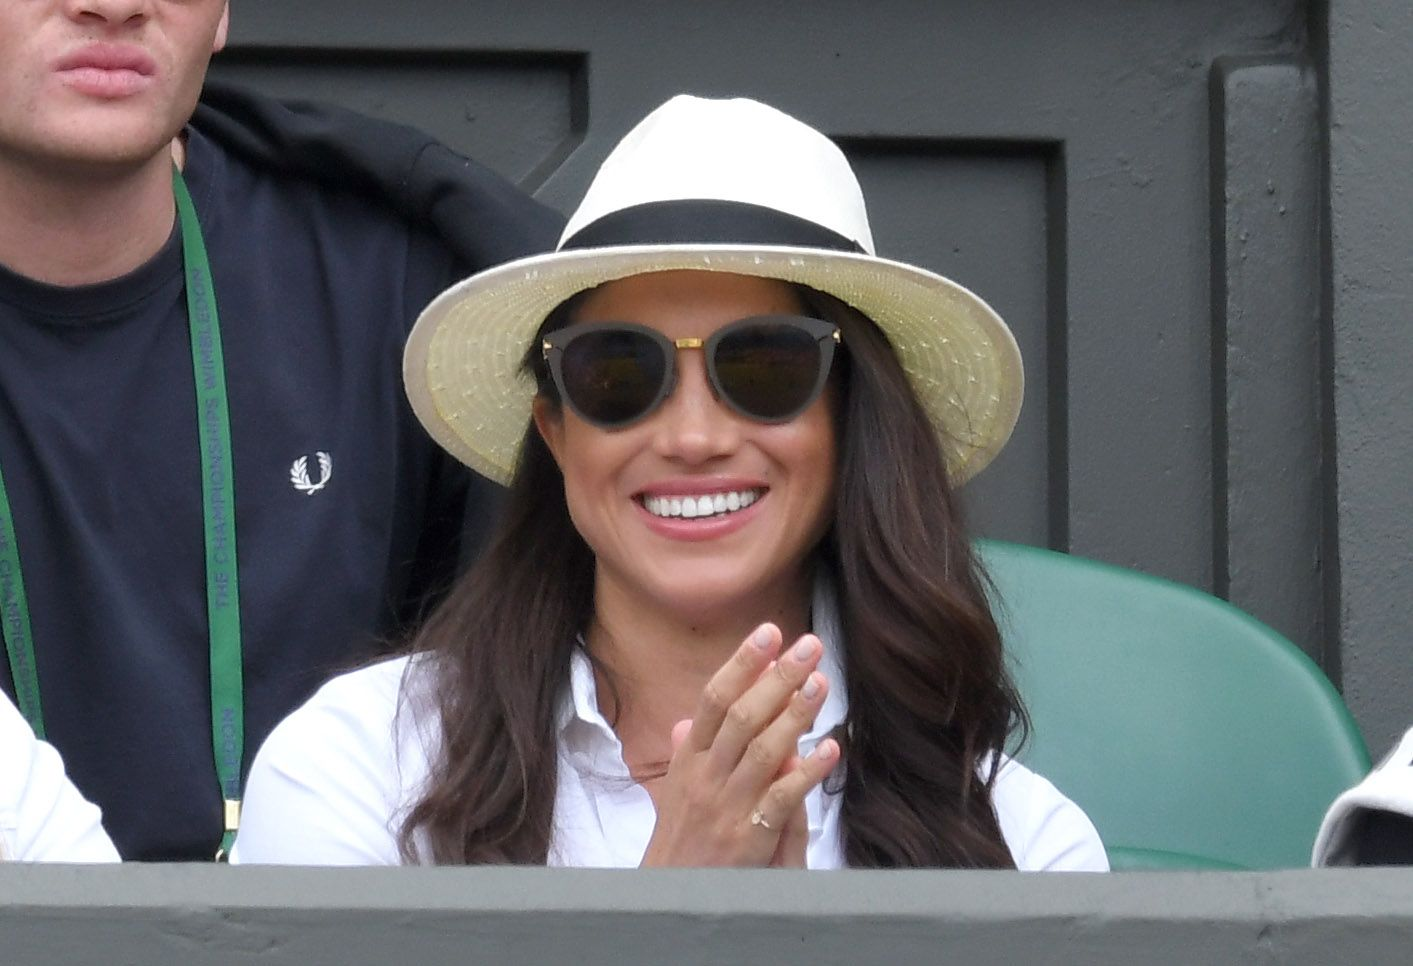 52fddd06d8a7f Meghan Markle s Madewell Panama Hat Is a Longtime Favorite of Hers